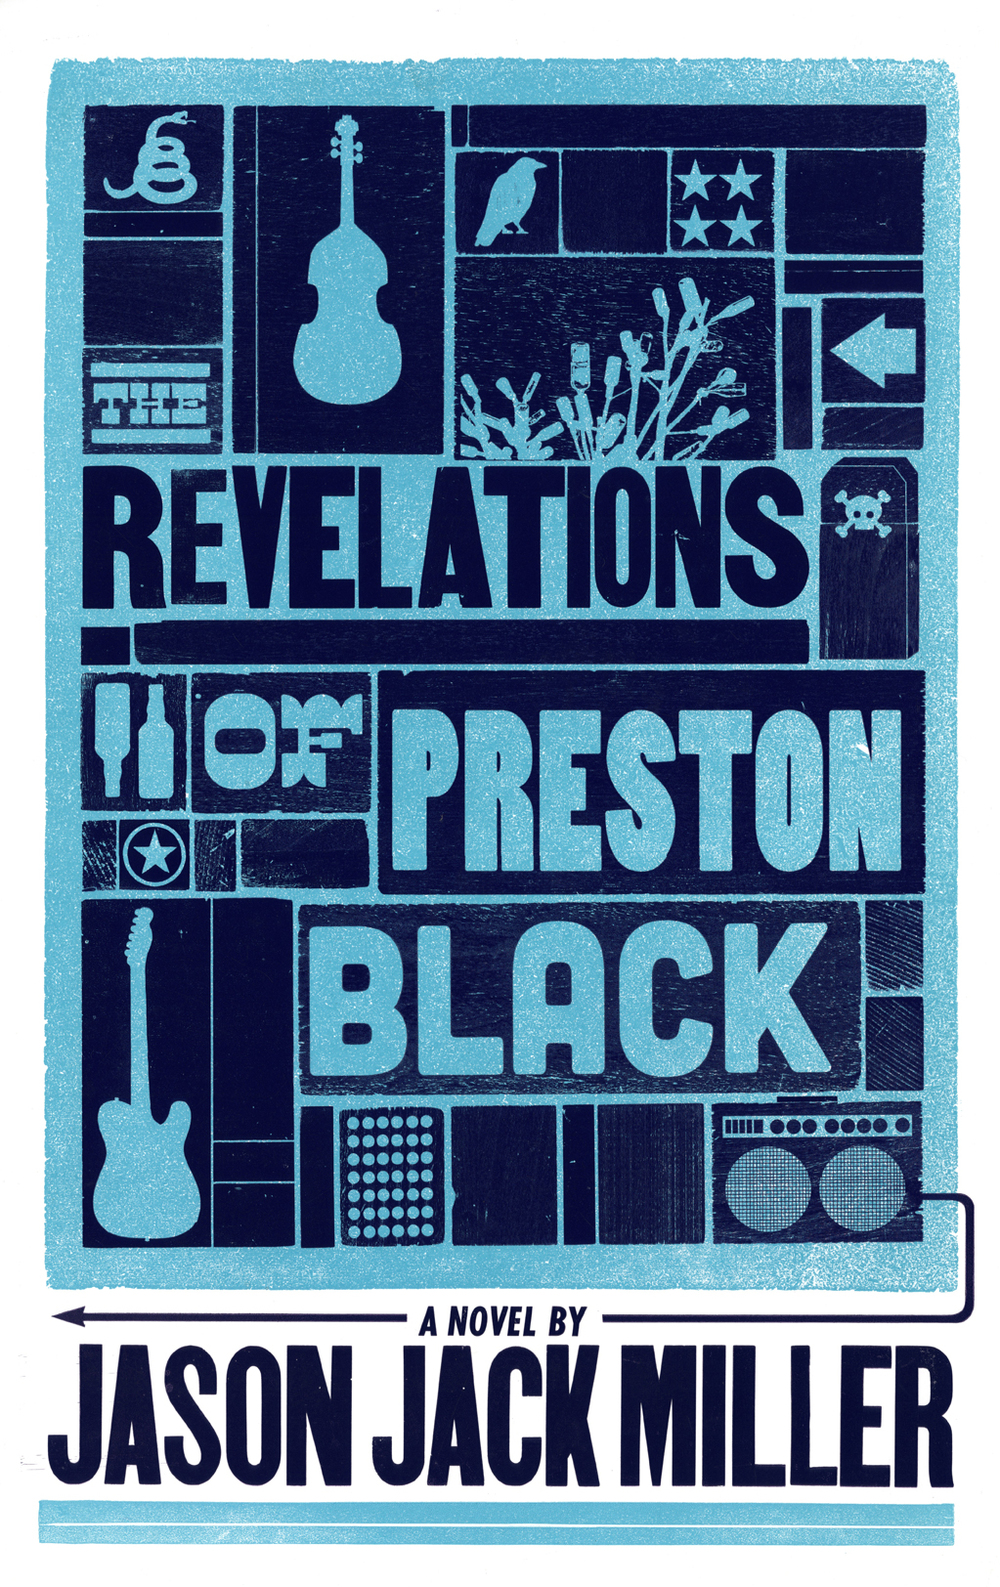 The Revelations of Preston Black, 2-color letterpress poster/book cover, 2013